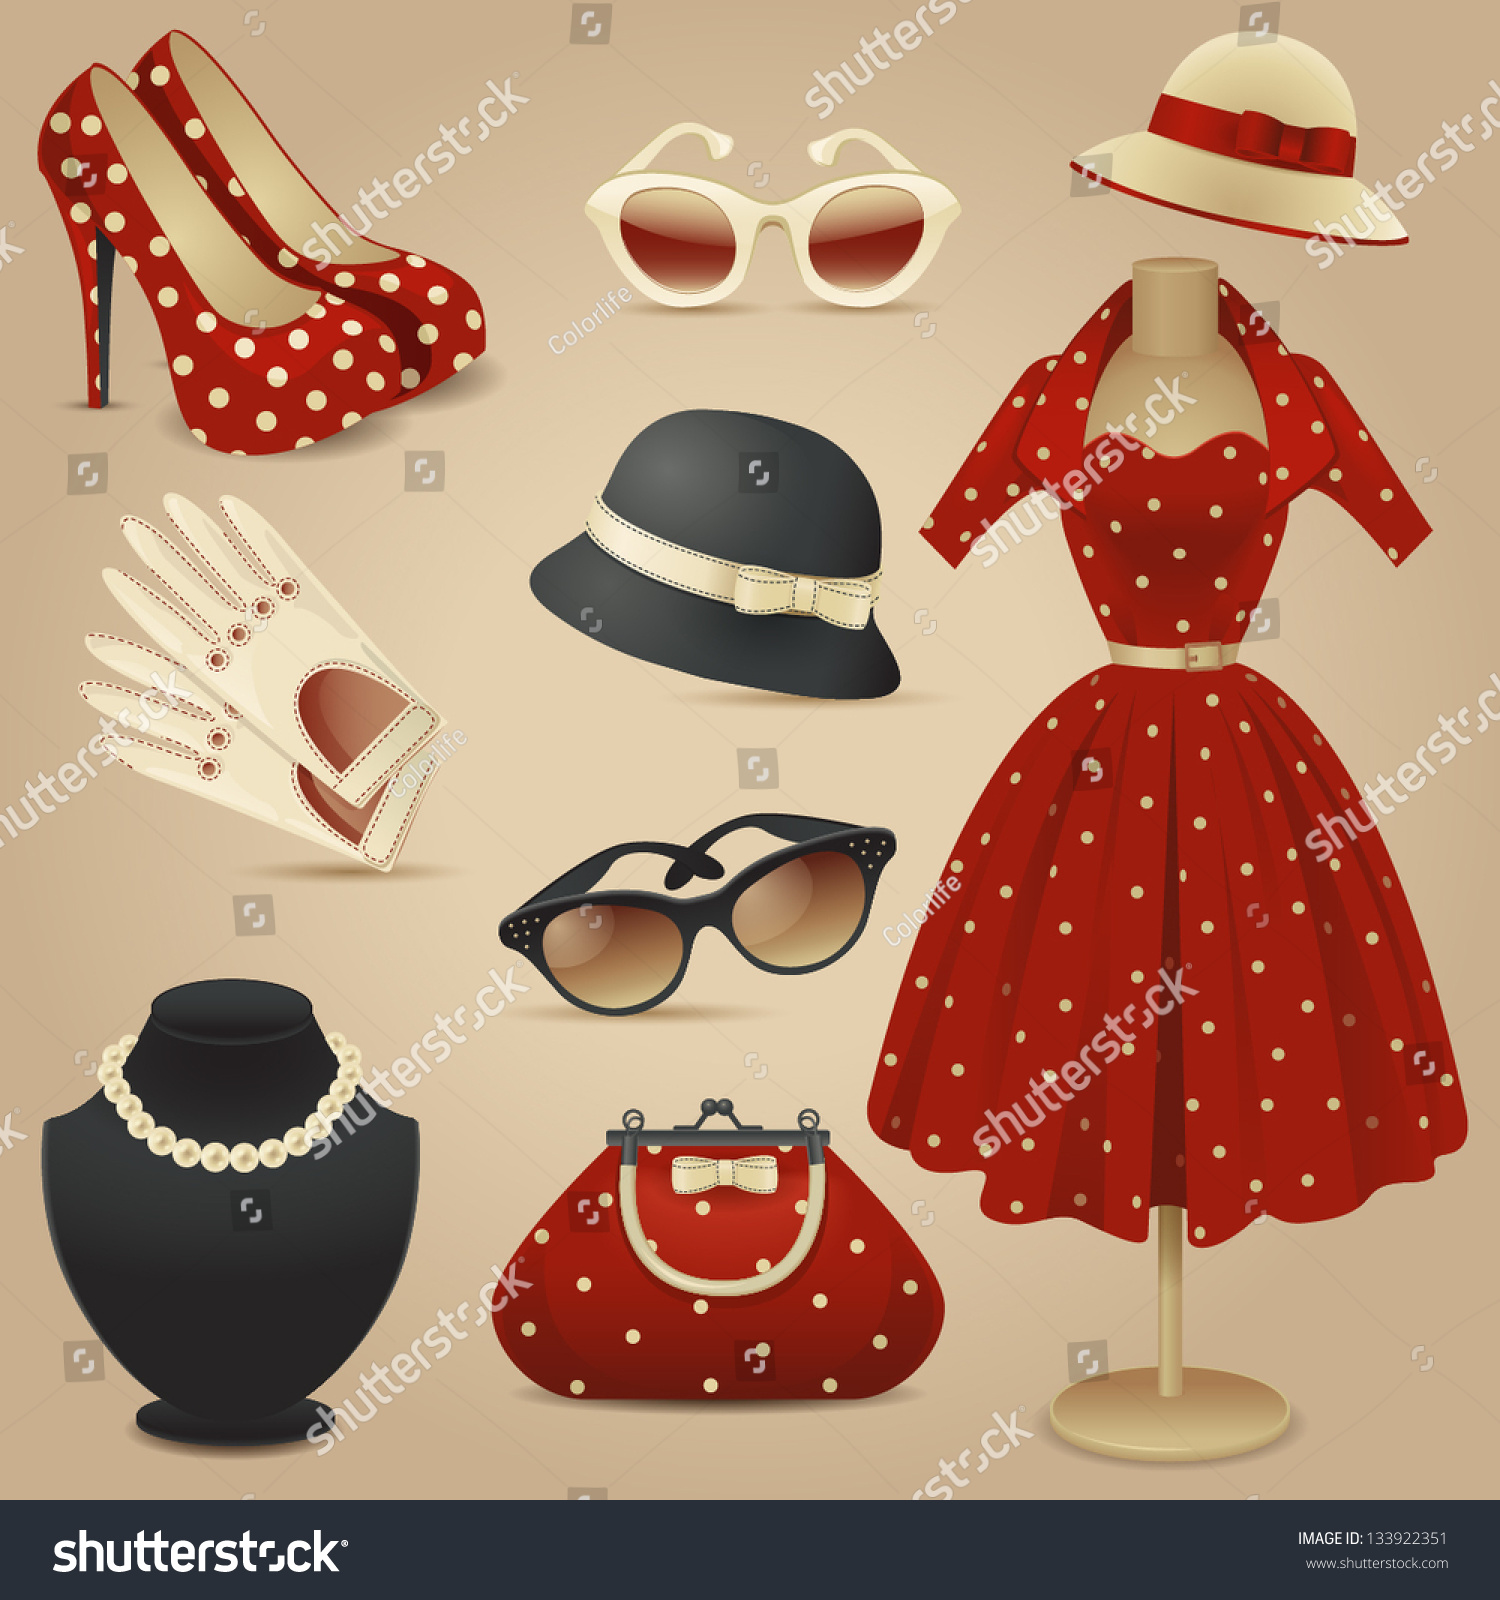 Lady retro fashion accessories illustration vectorielle libre de droits 133922351 shutterstock - Retro stuhle gunstig ...